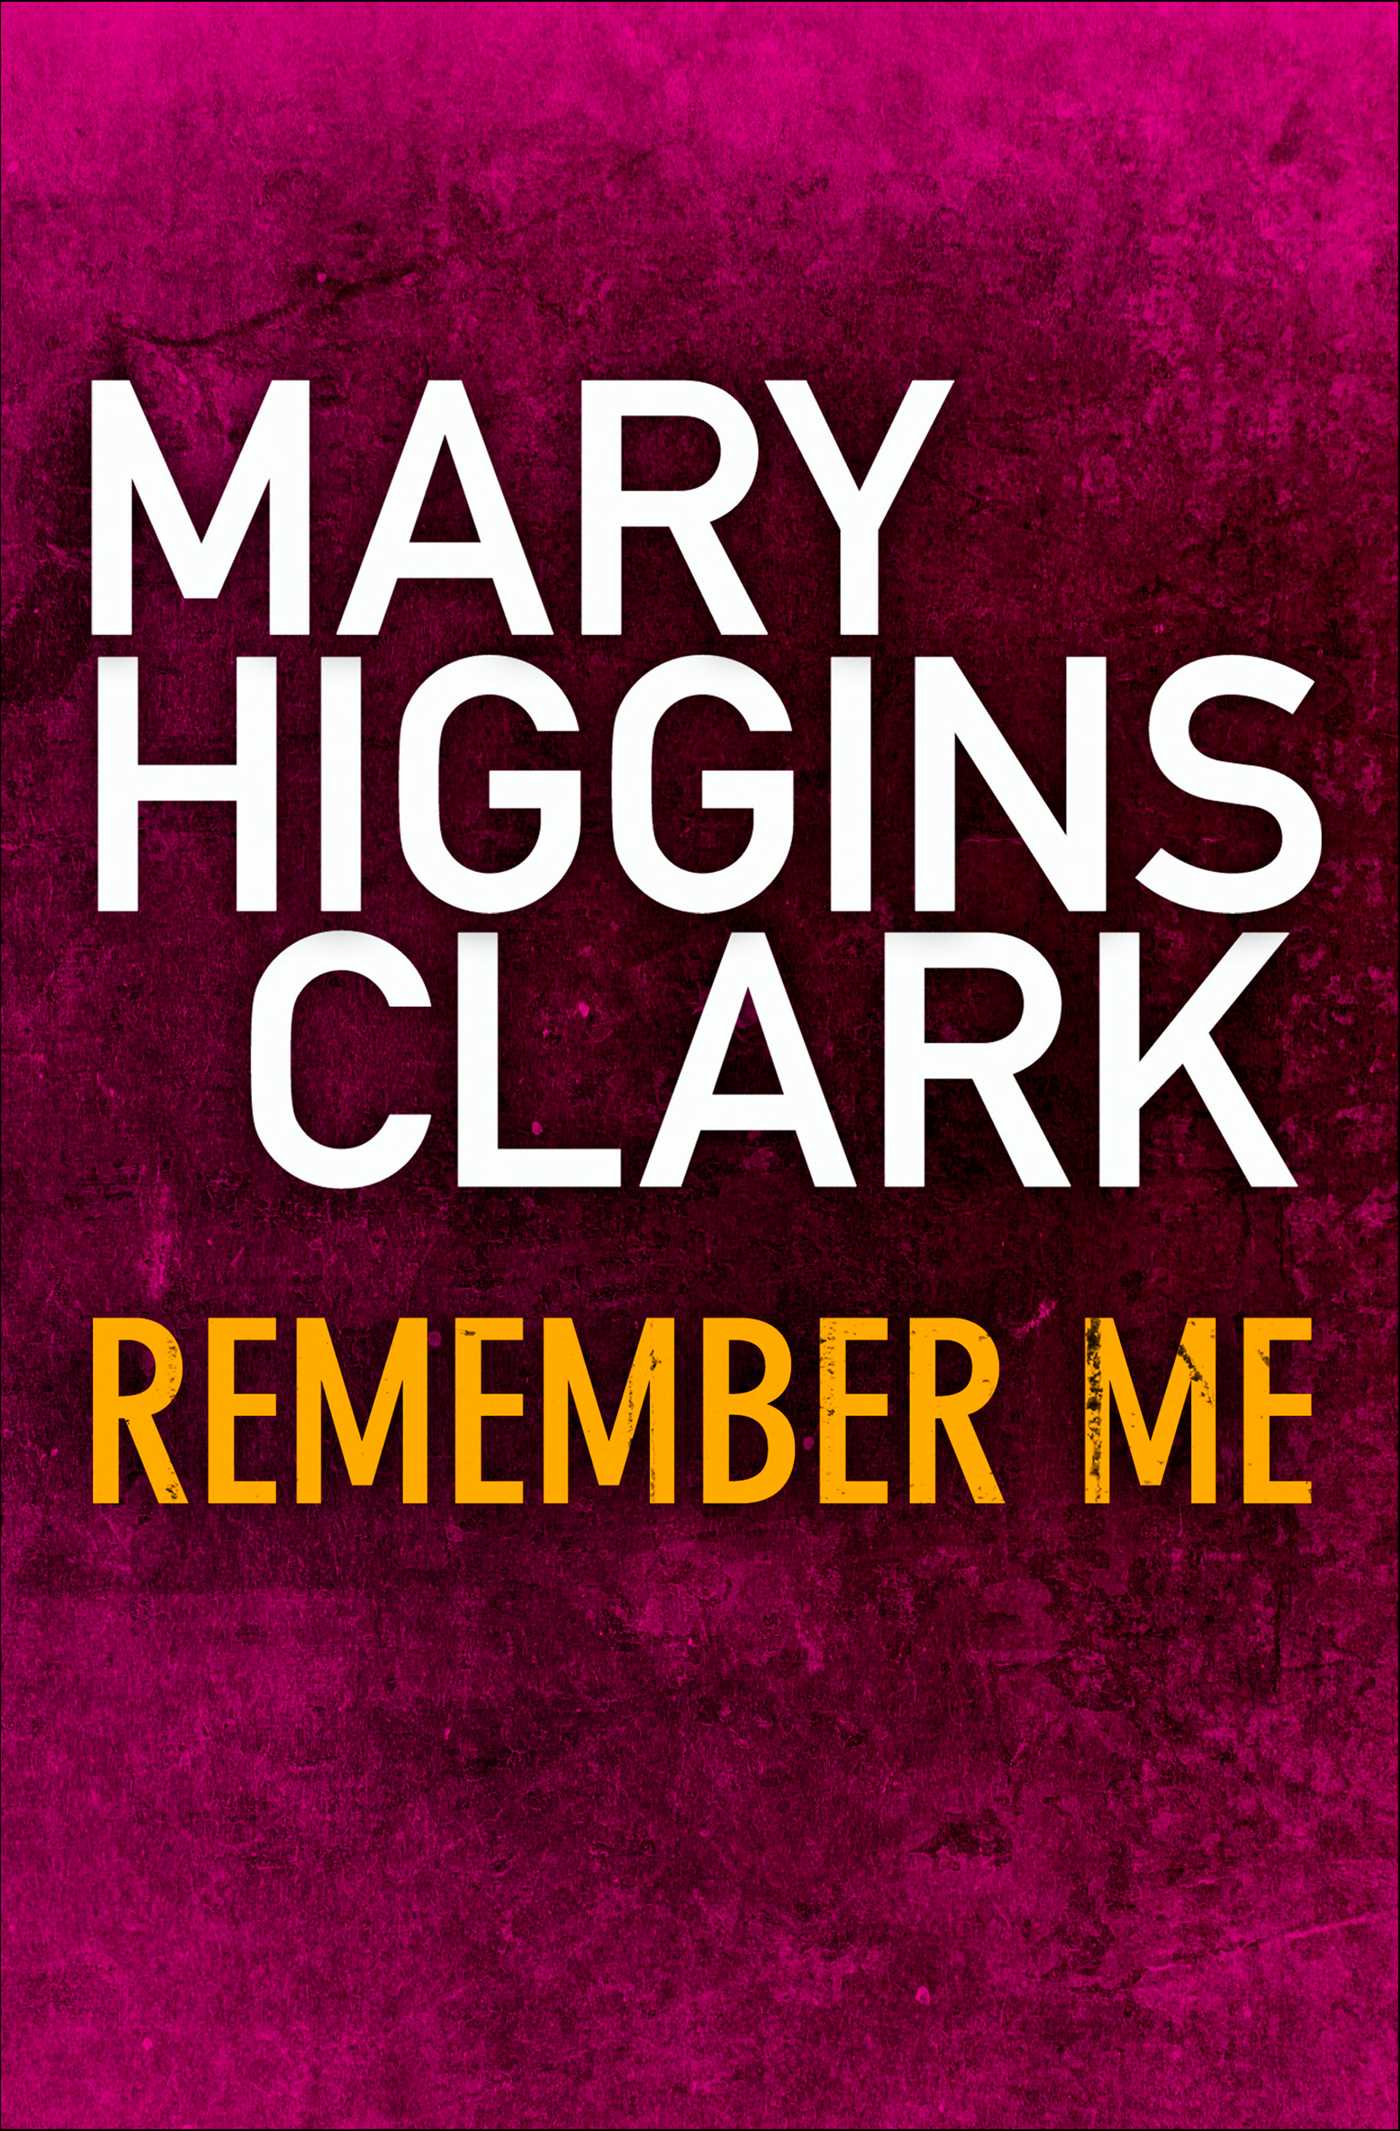 an introduction to the life of mary higgins clark Mary higgins clark book review  by in life she meets the man of her dreams  study guide for introduction to maternity pediatric nursing 5e.